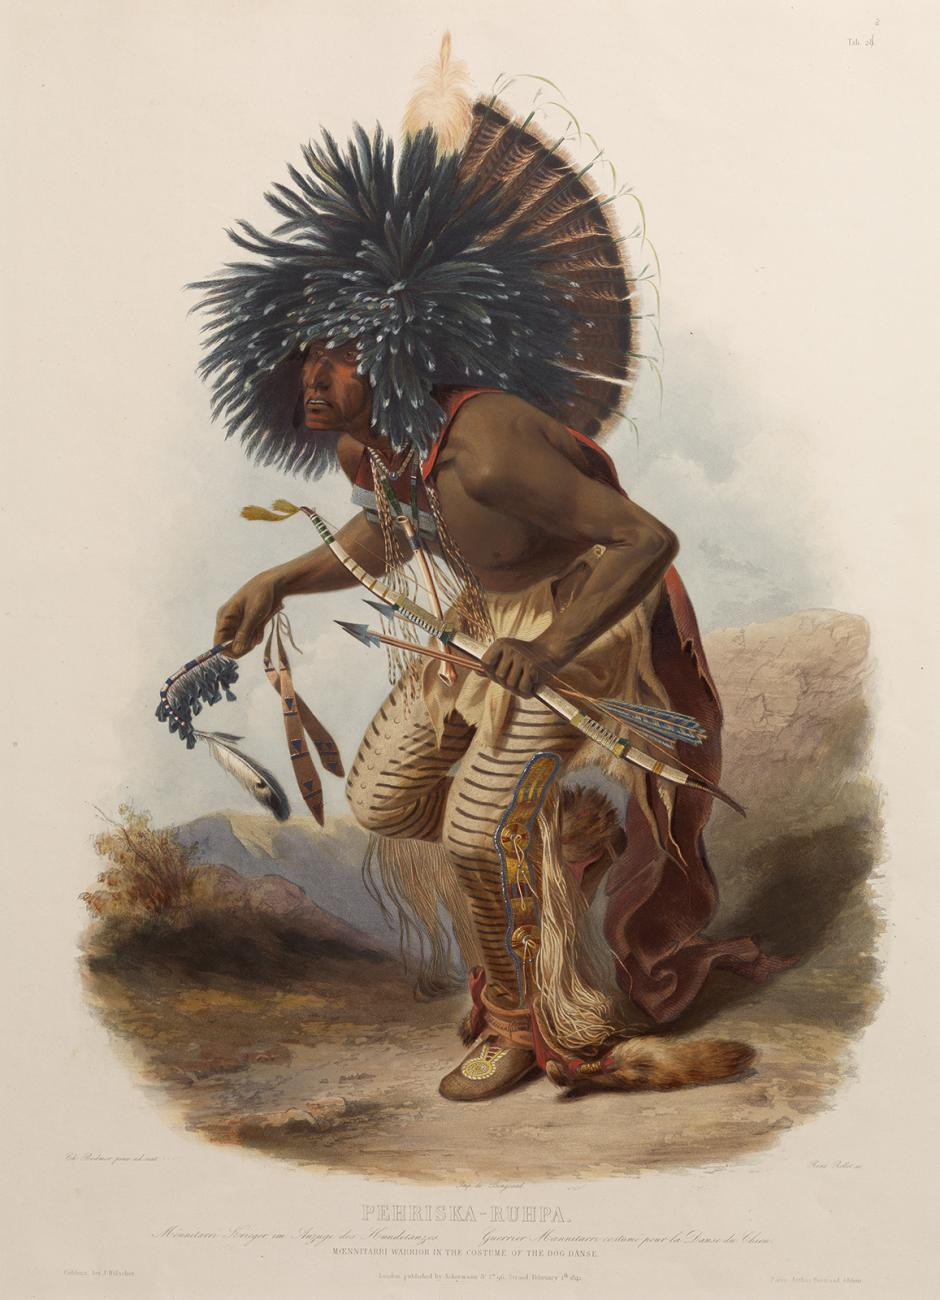 A painting of a man dancing.